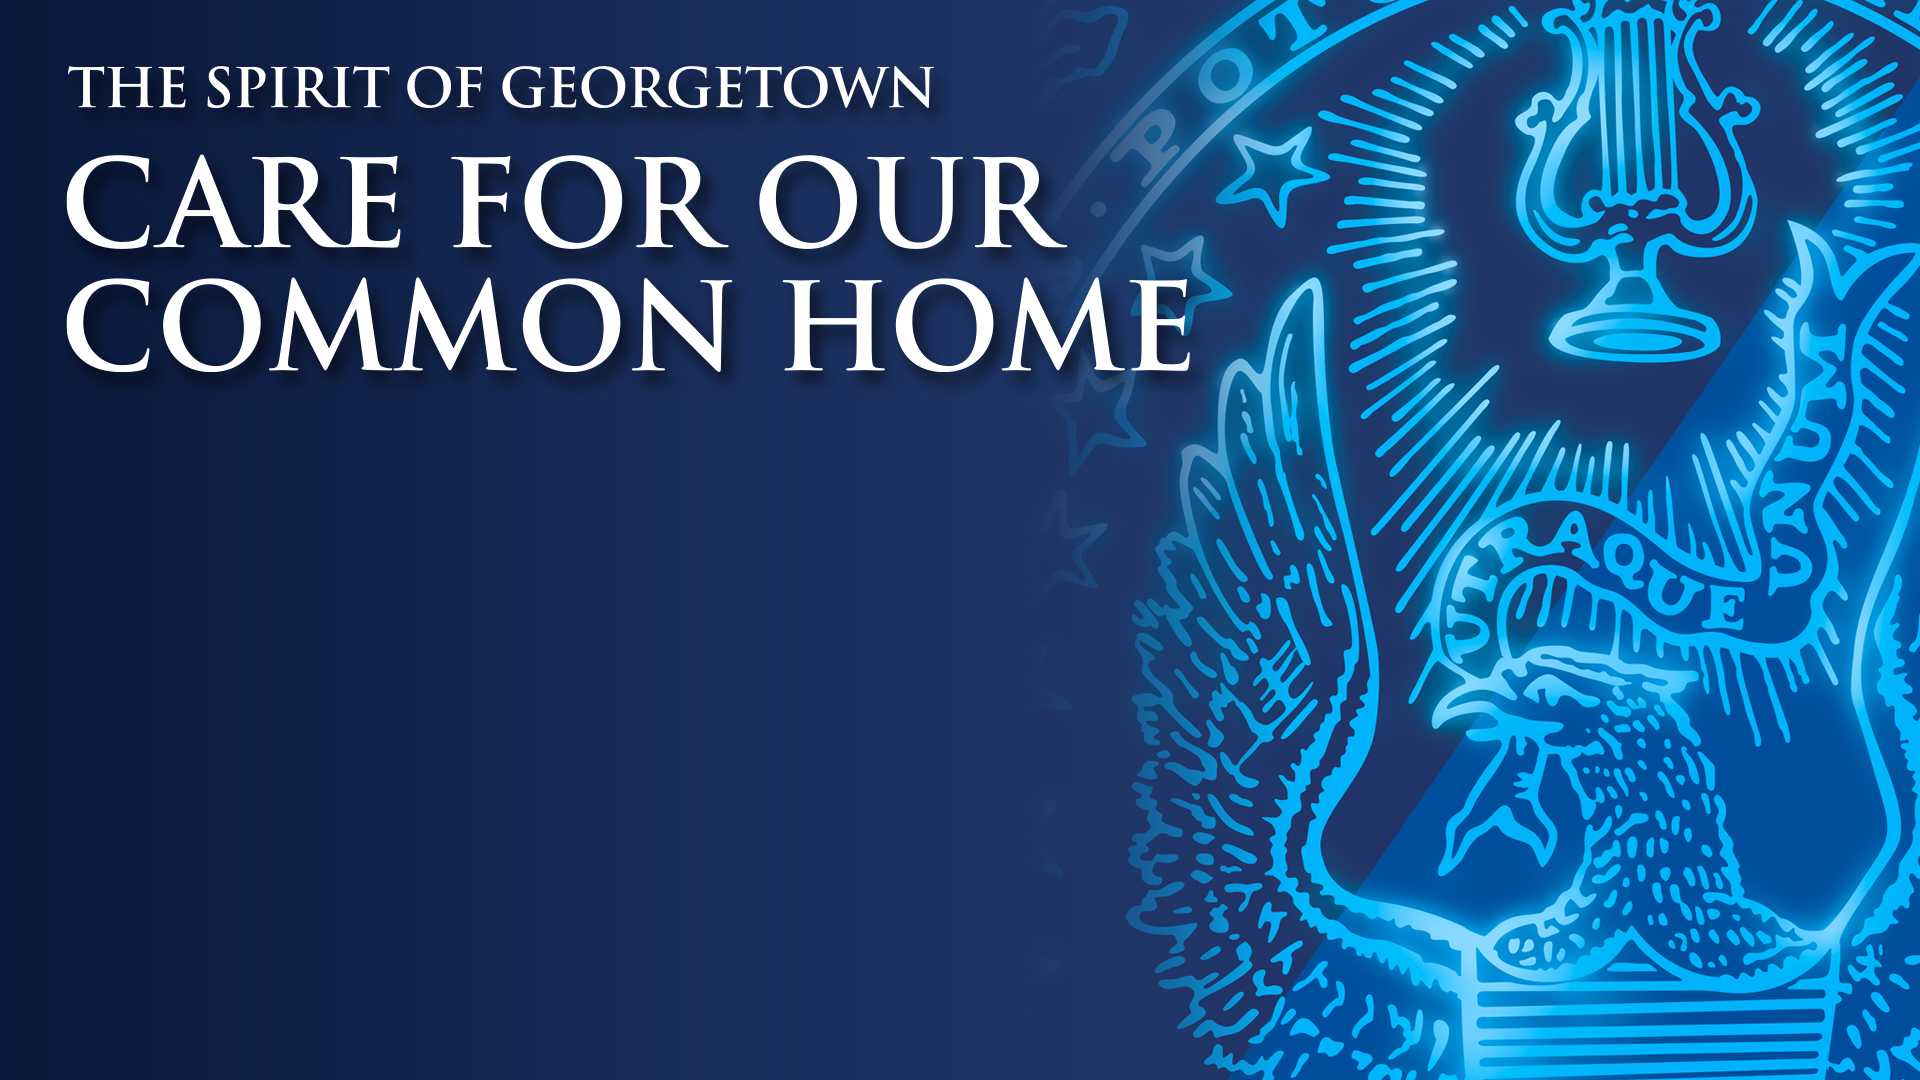 The Care for our Common Home Spirit of Georgetown banner